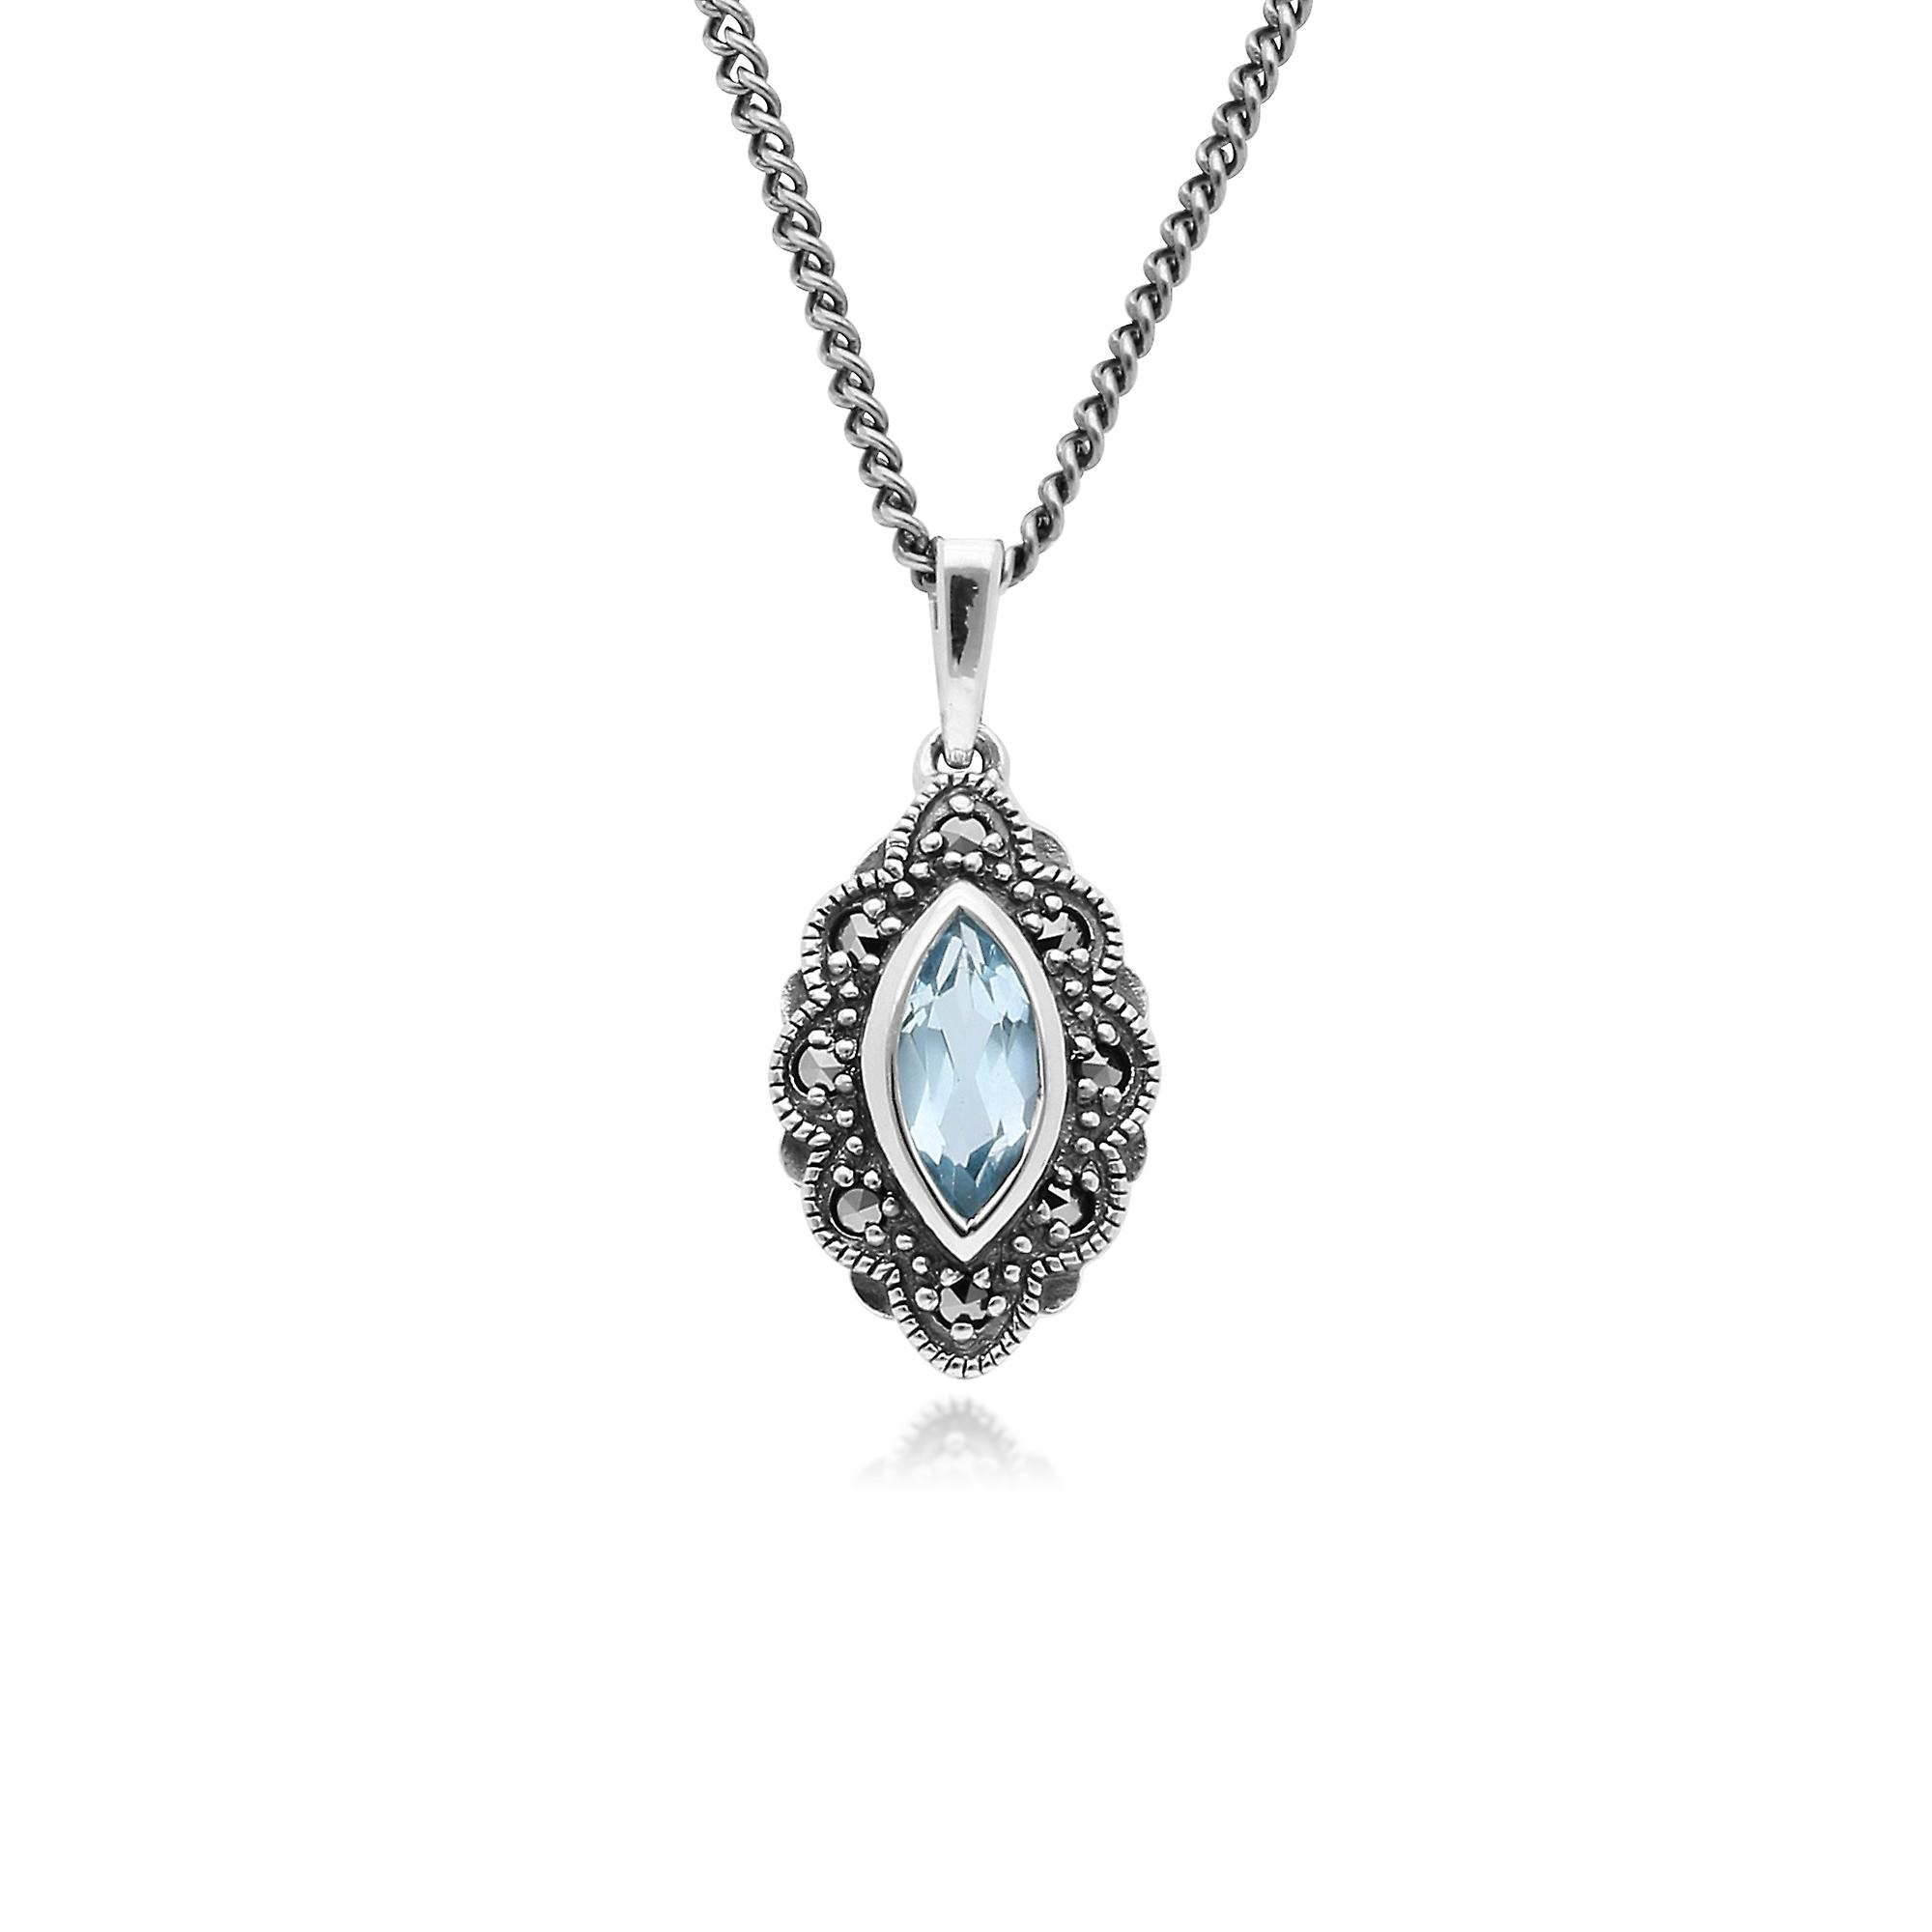 Gemondo Sterling Silver Blue Topaz & Marcasite Art Nouveau 45cm Necklace